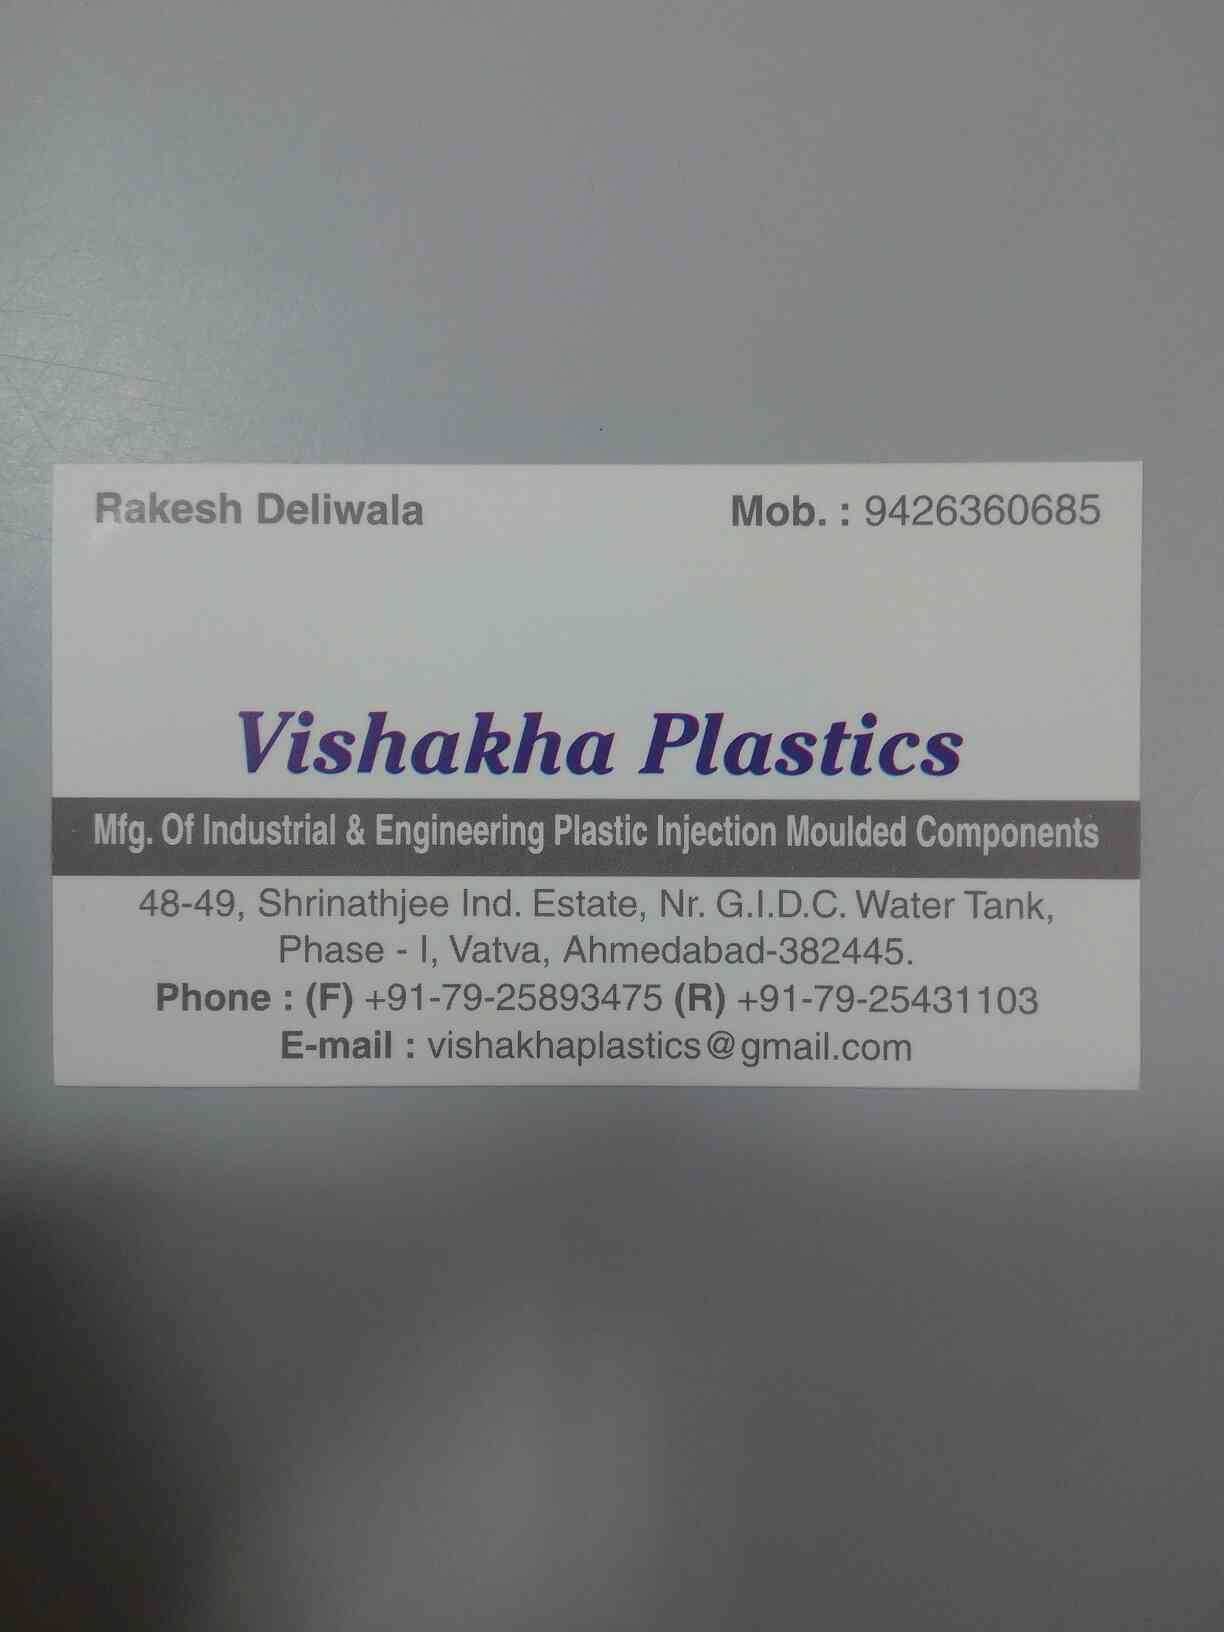 we are manufacturer of pharma packing articles in vatva in Ahmedabad